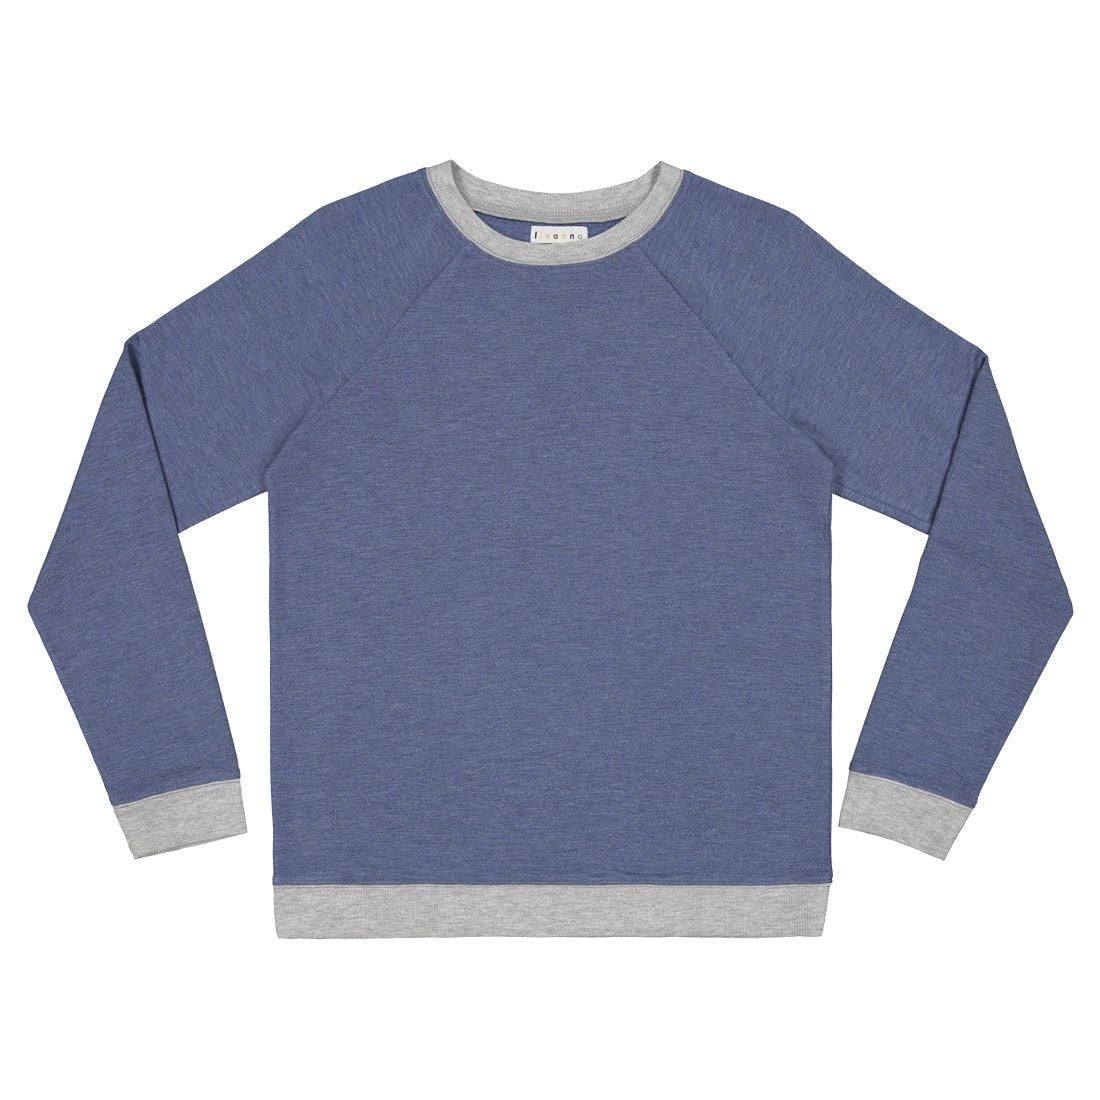 Livanna Long Sleeve T-shirt